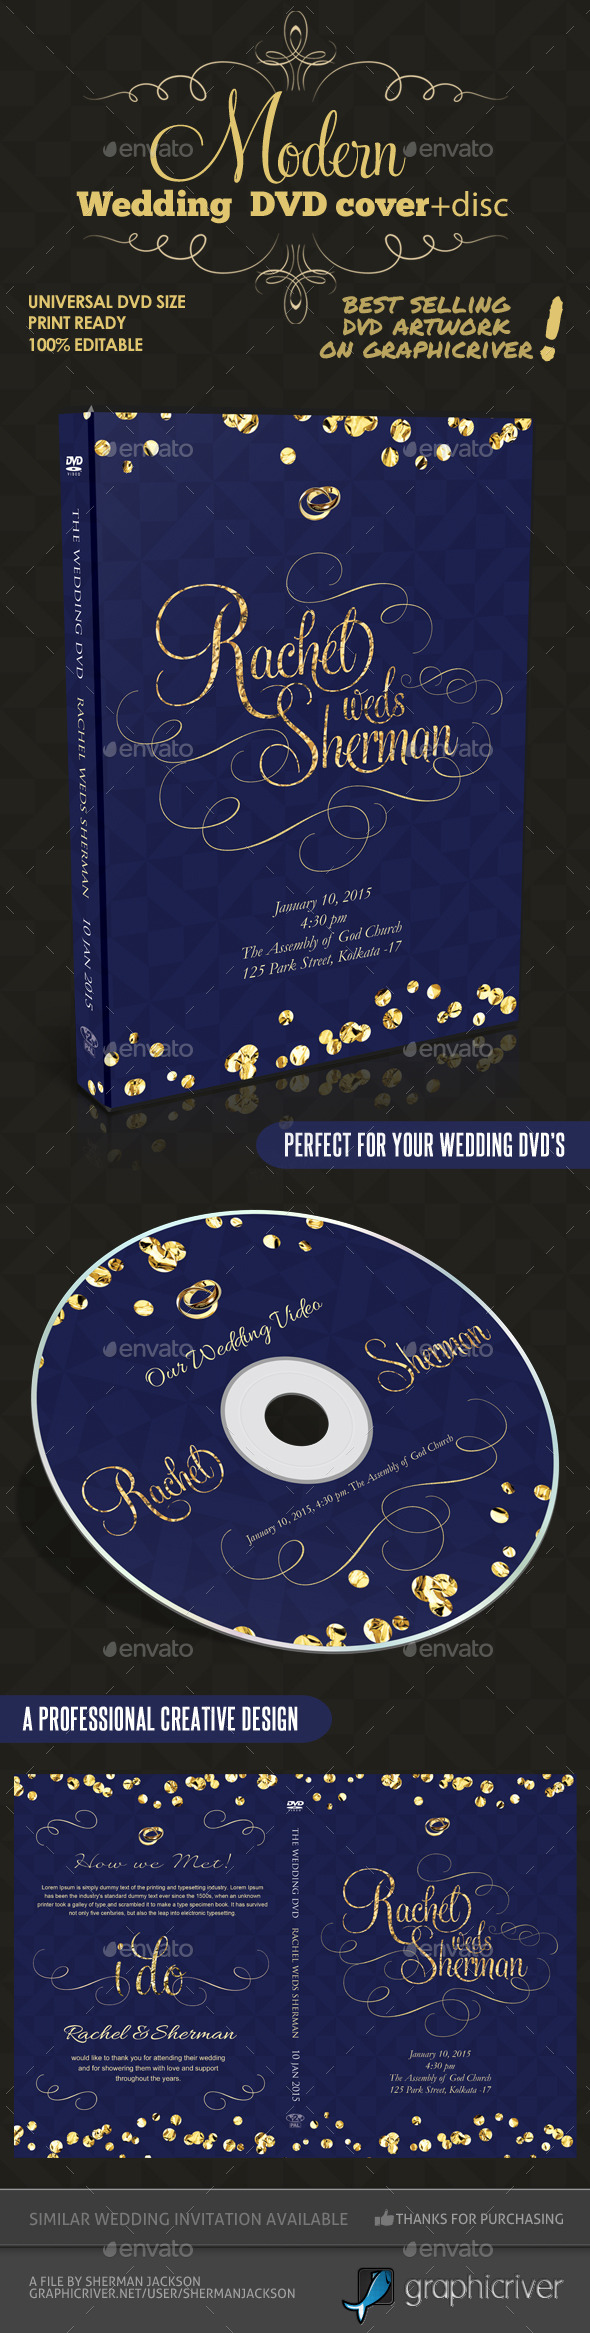 GraphicRiver Modern Wedding DVD Cover & Disc Template 10237595